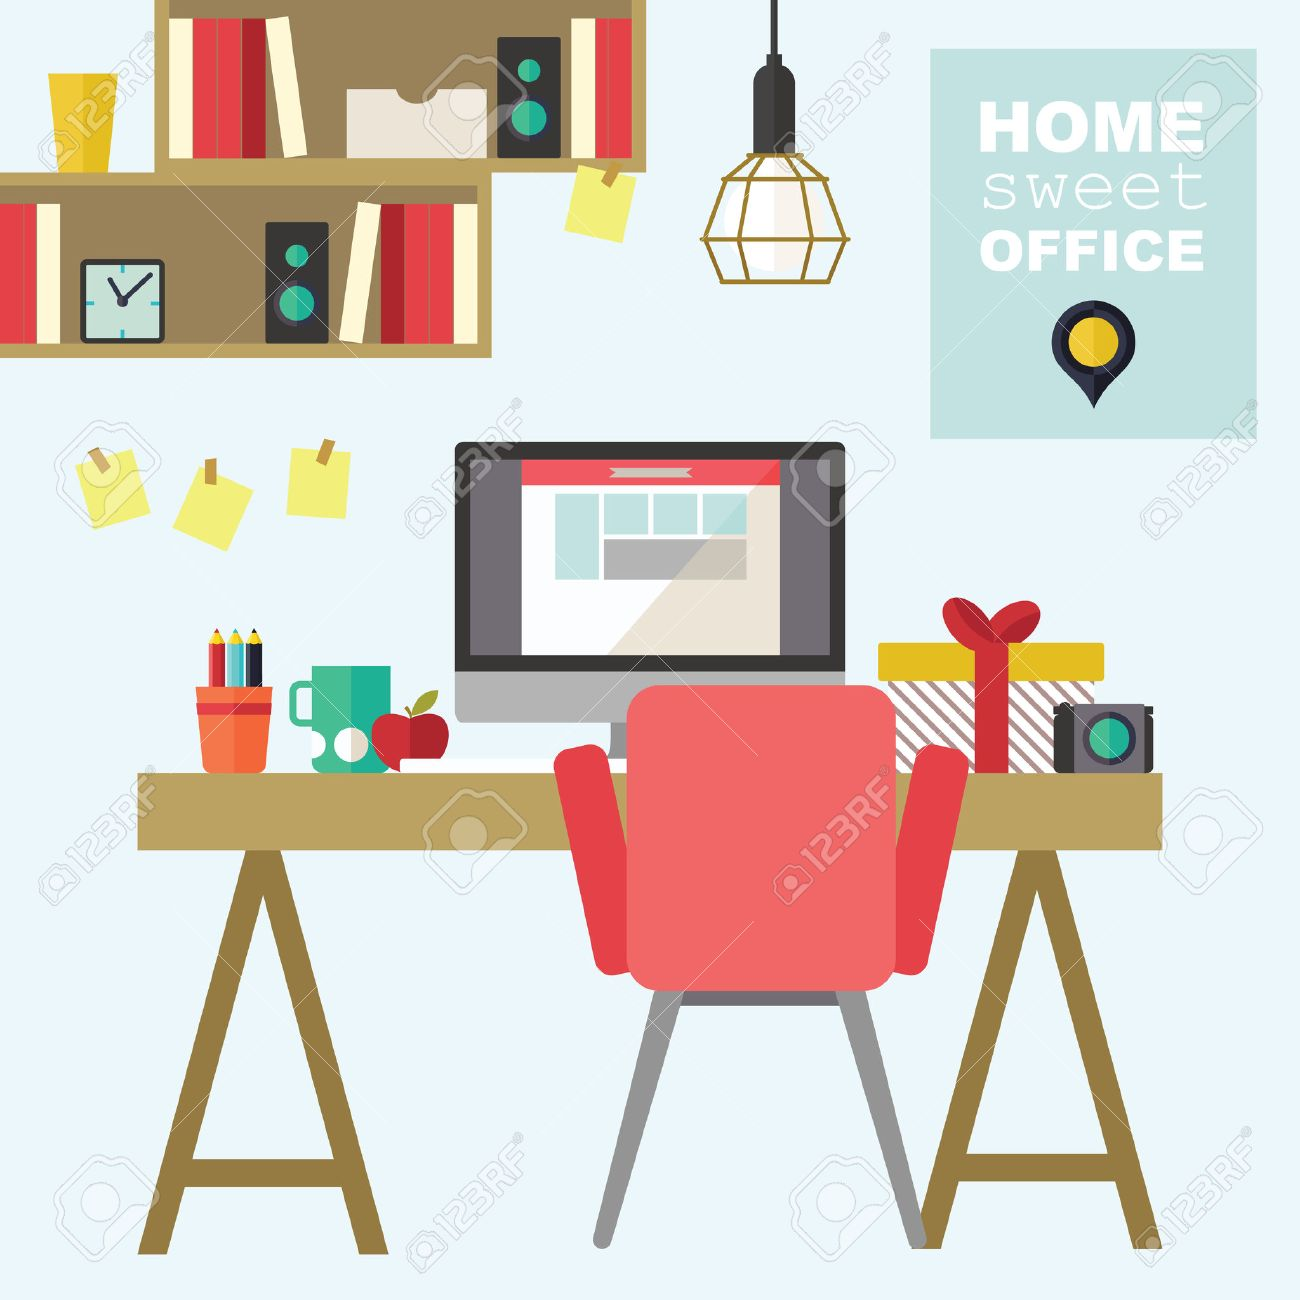 home office flat interior design illustration stock vector 41649609